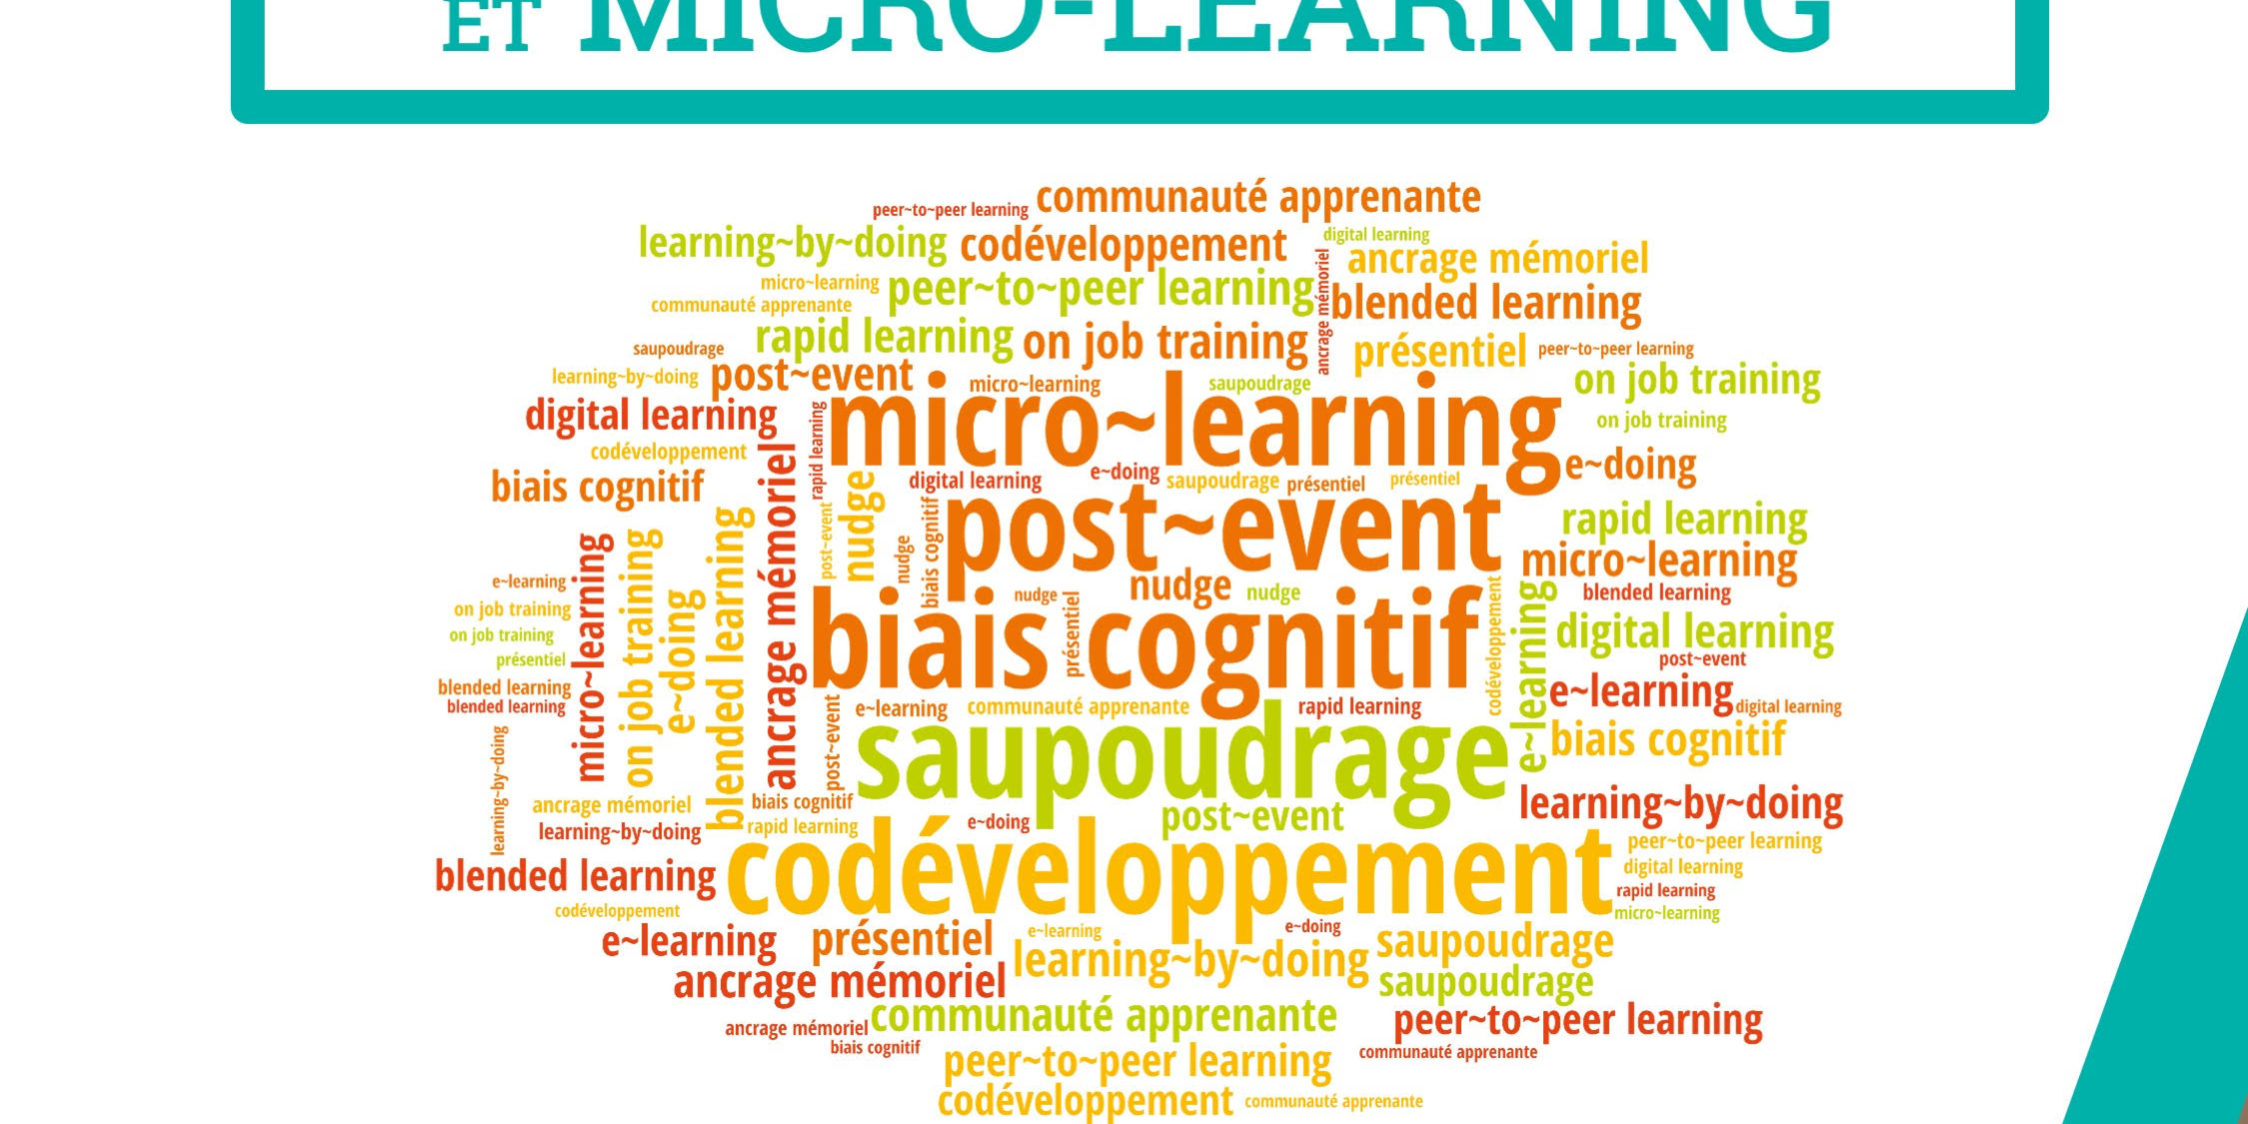 microlearning ancrage mémoriel